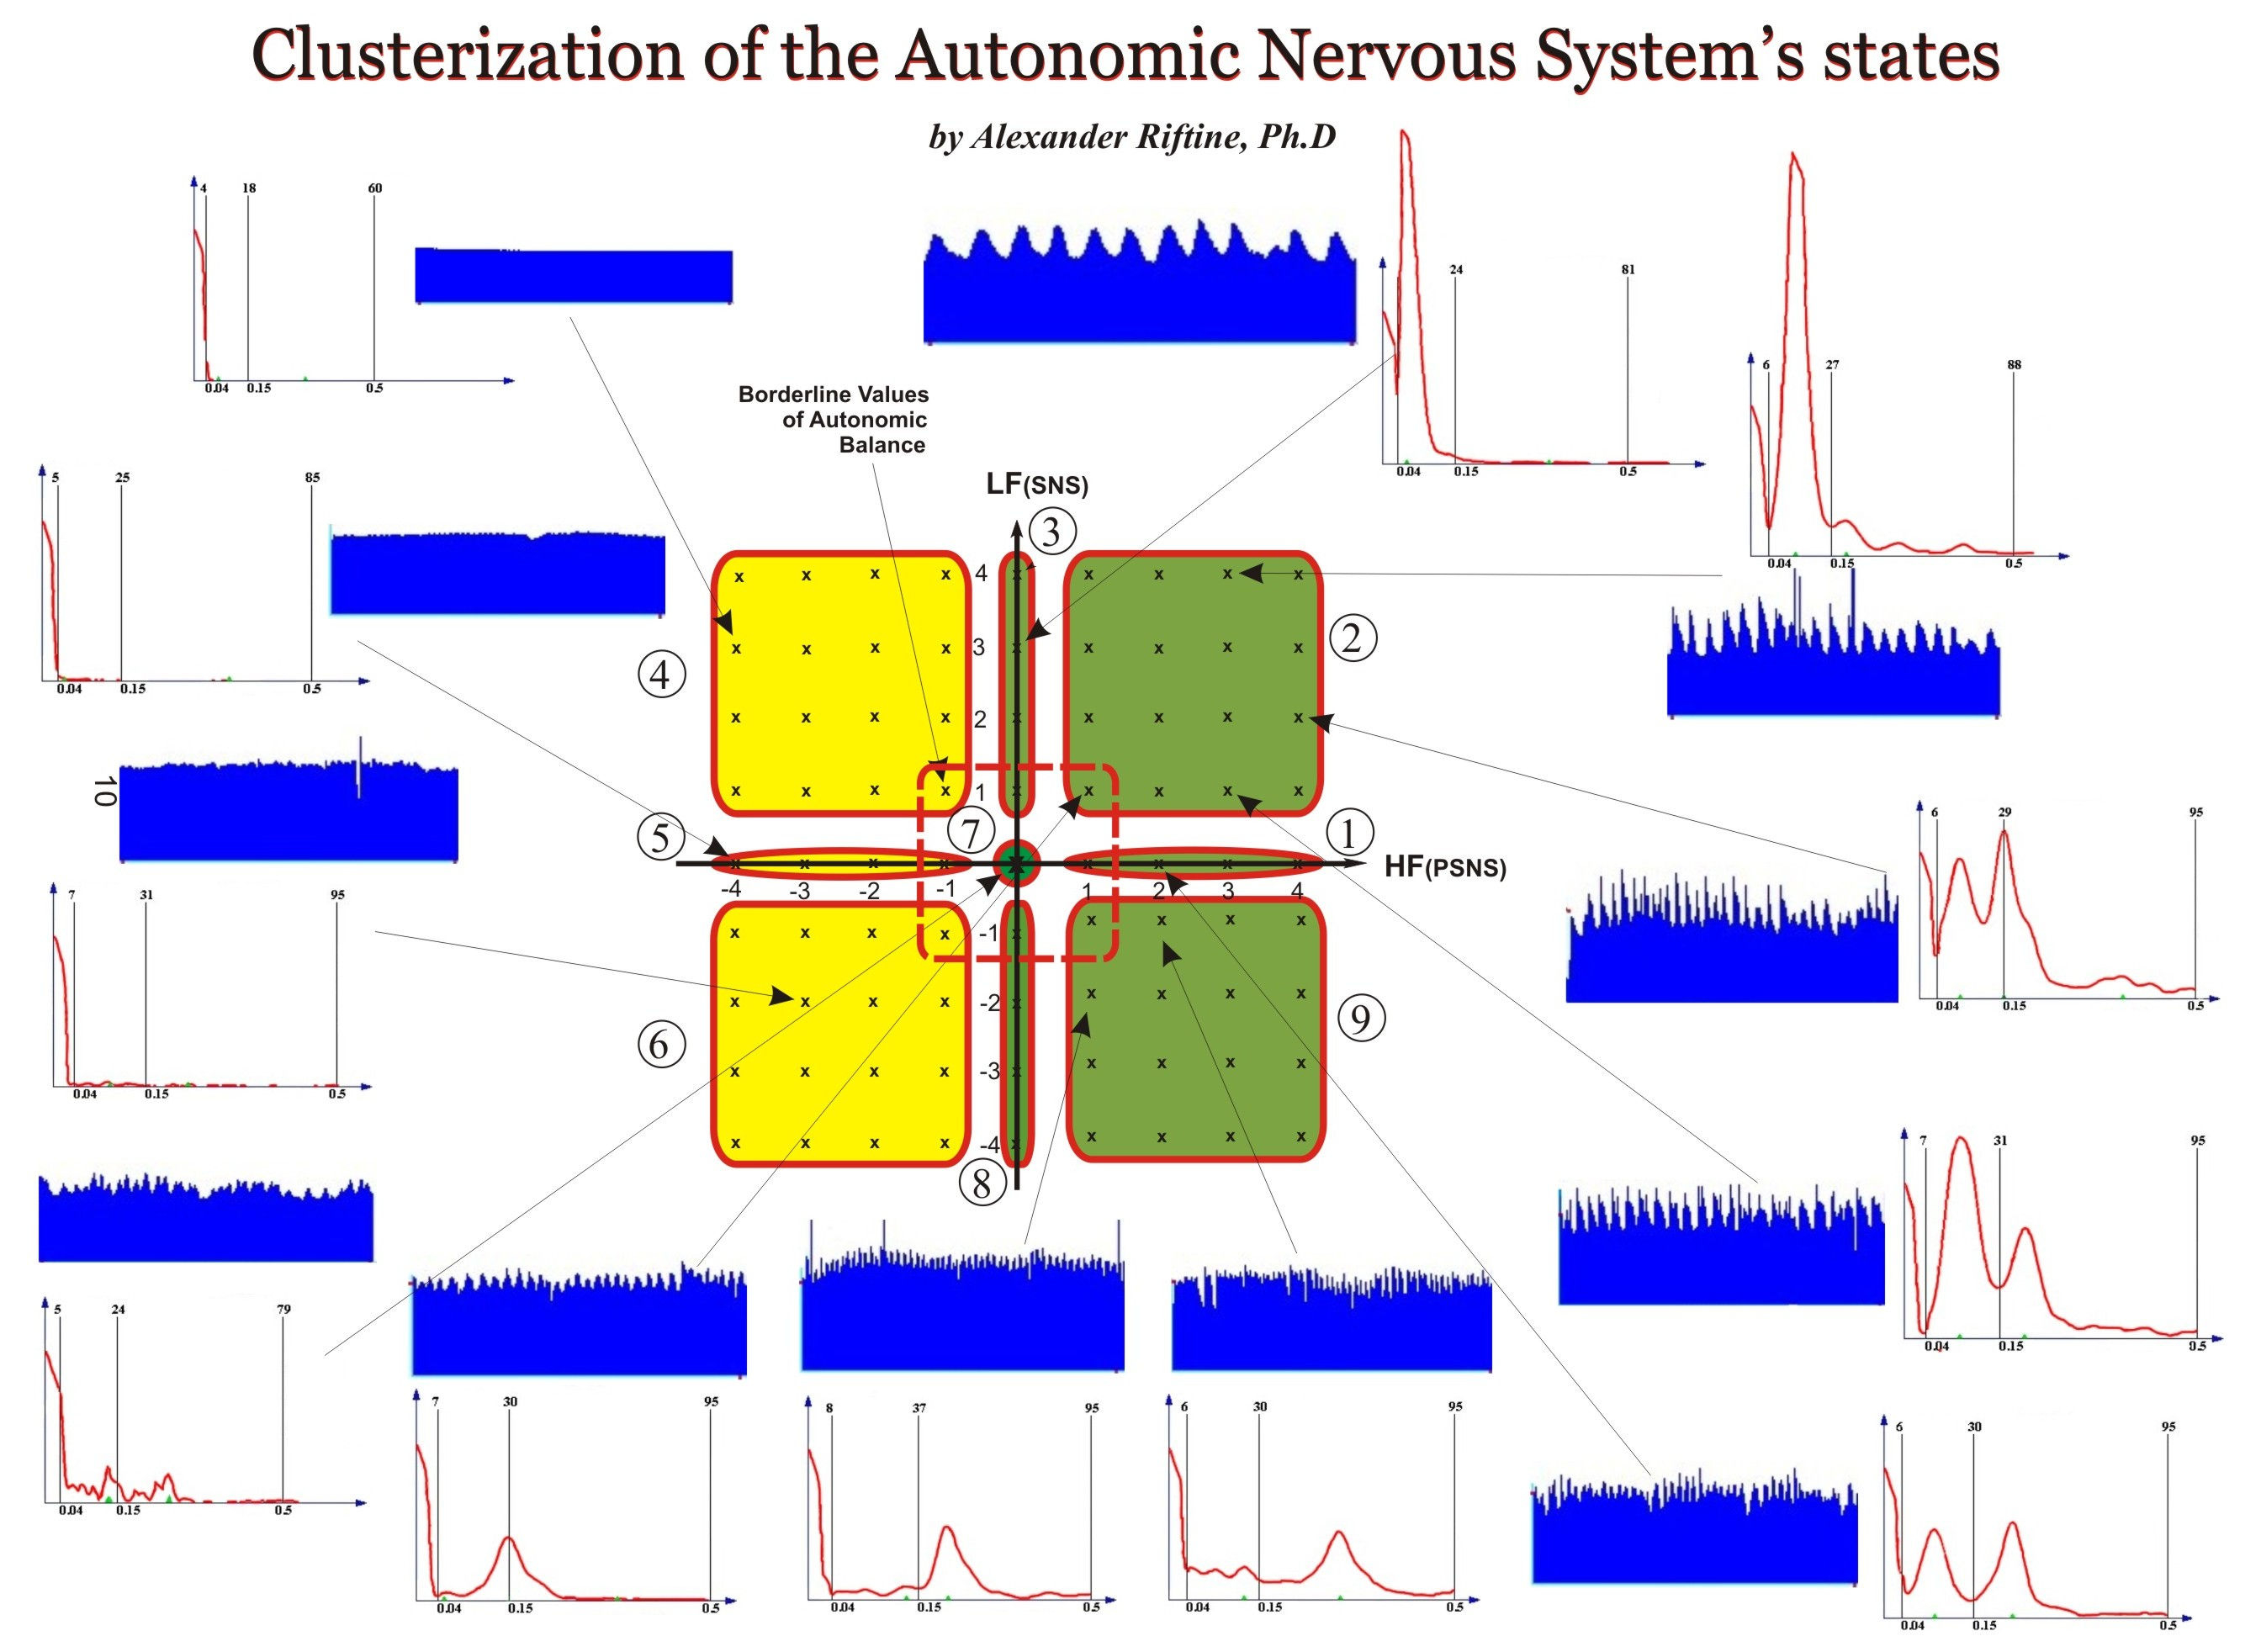 Clusterization of the Autonomic Nervous System's States